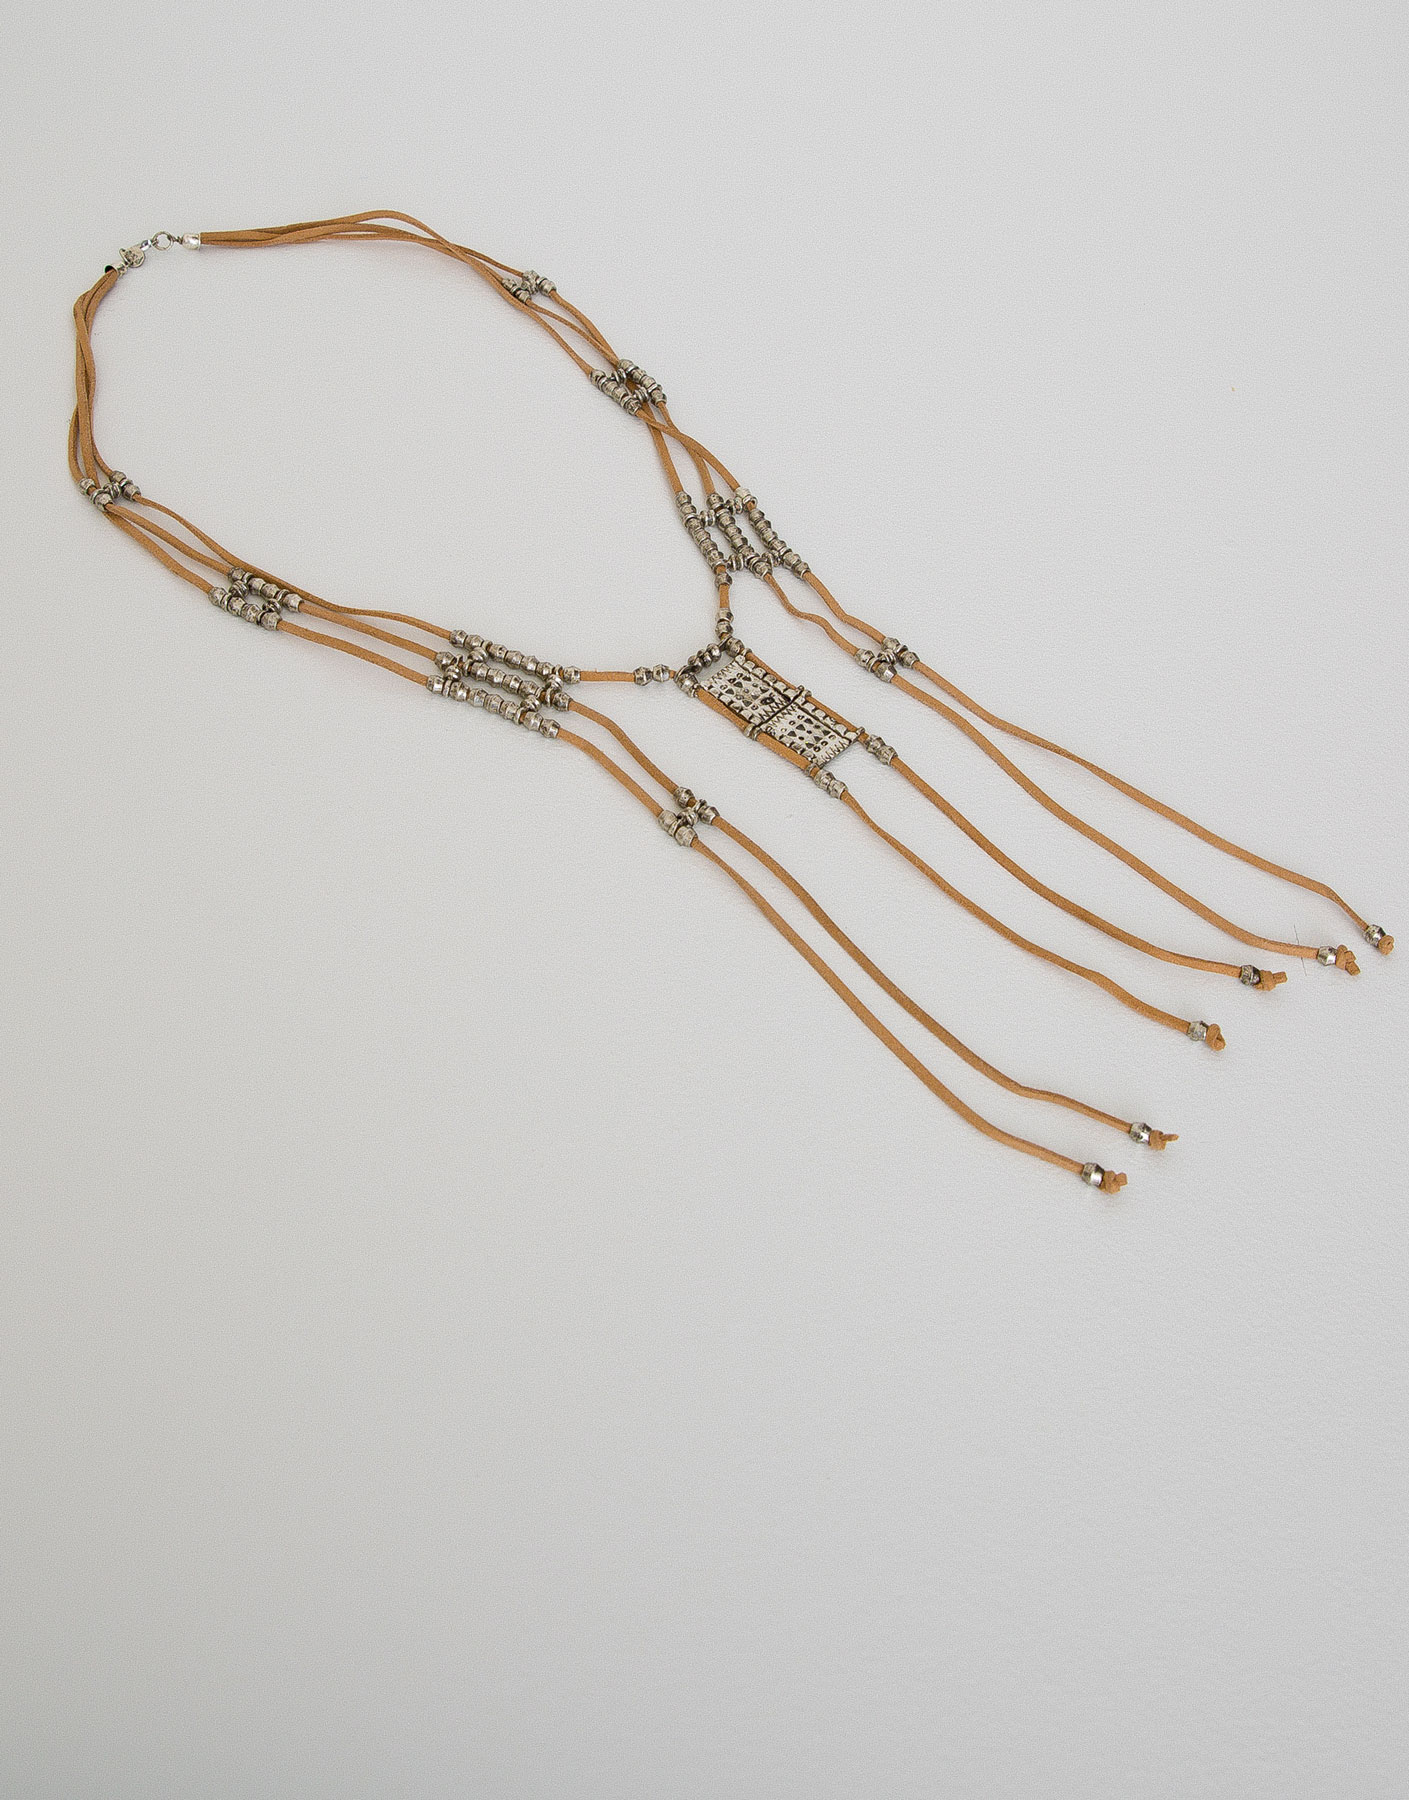 Metal and suede necklace